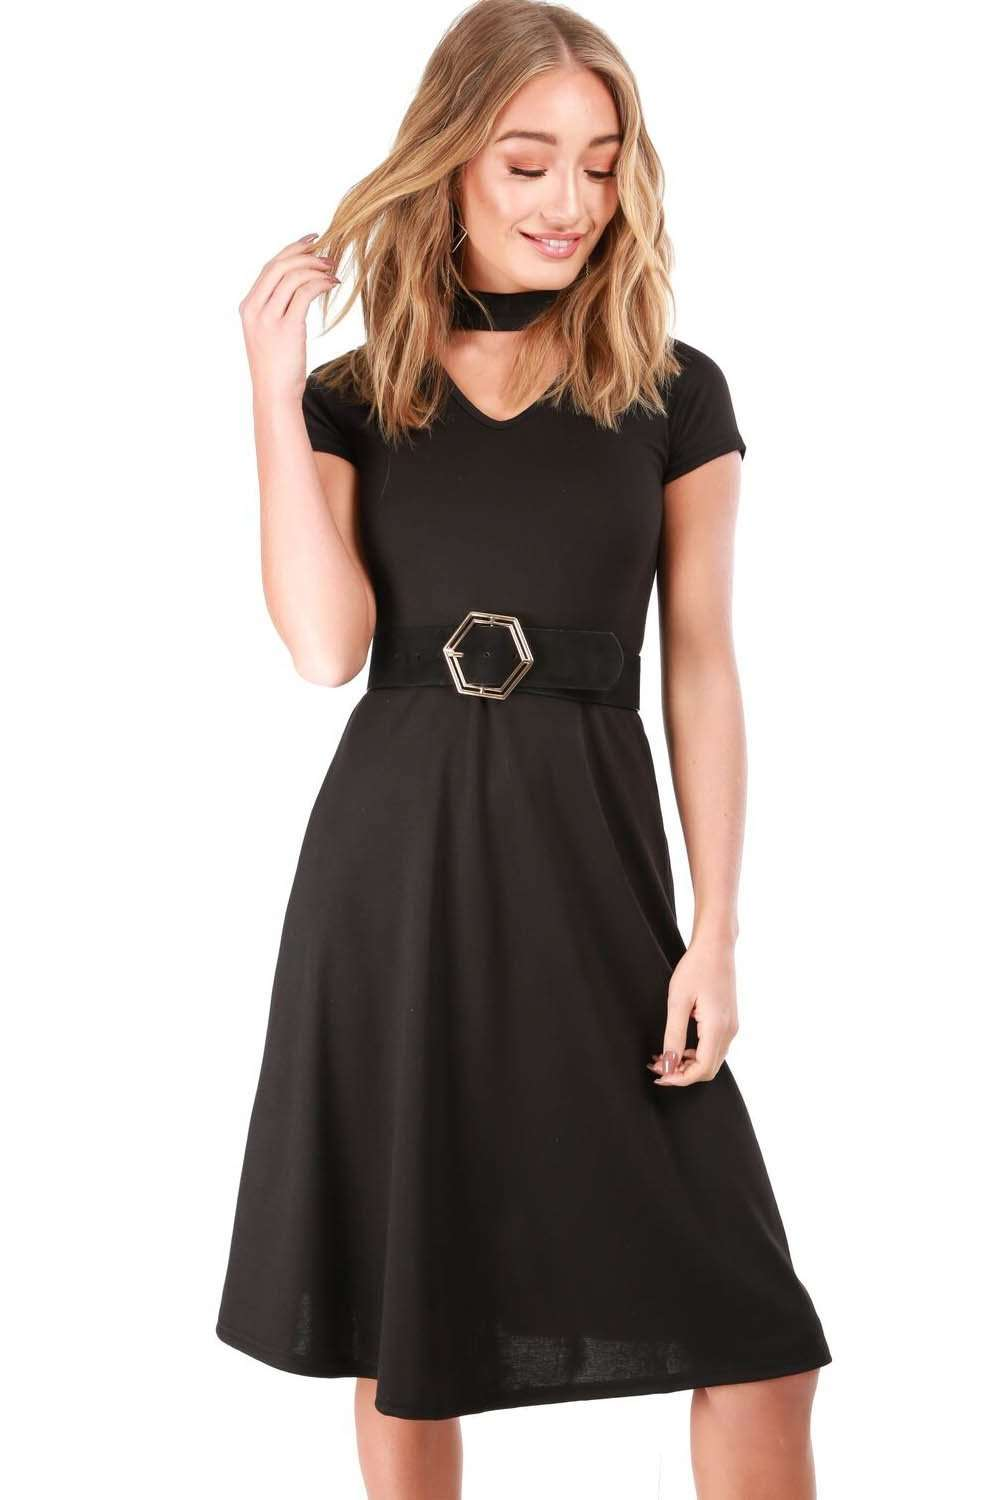 Black Choker Neck Cap Sleeve Midi Skater Dress - bejealous-com